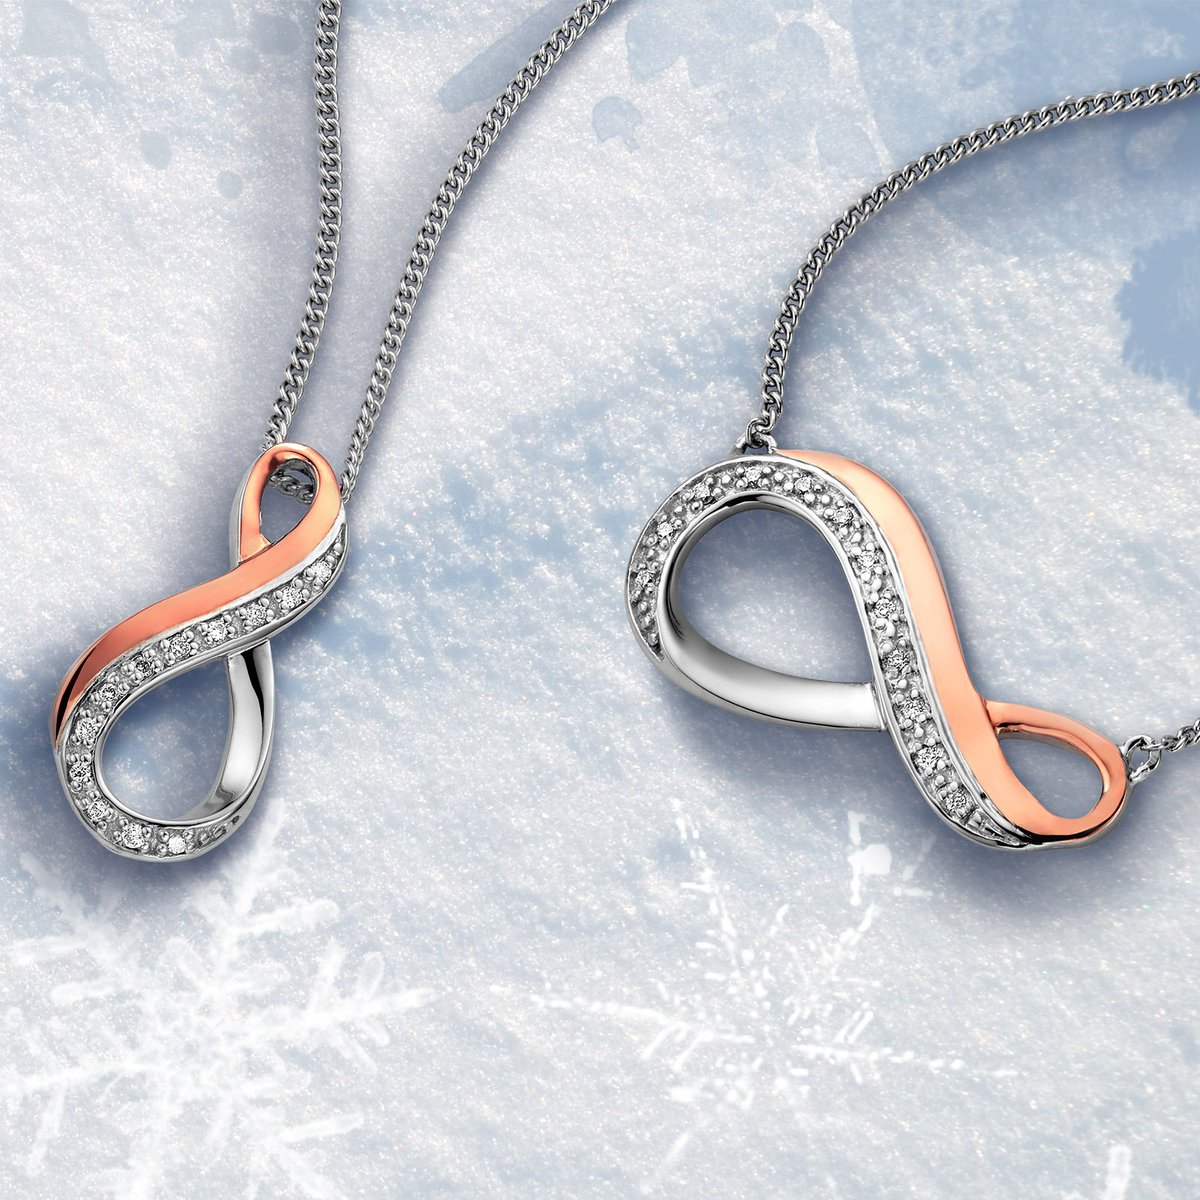 Clogau On Twitter Elegant And Alluring Inspired By The Infinity